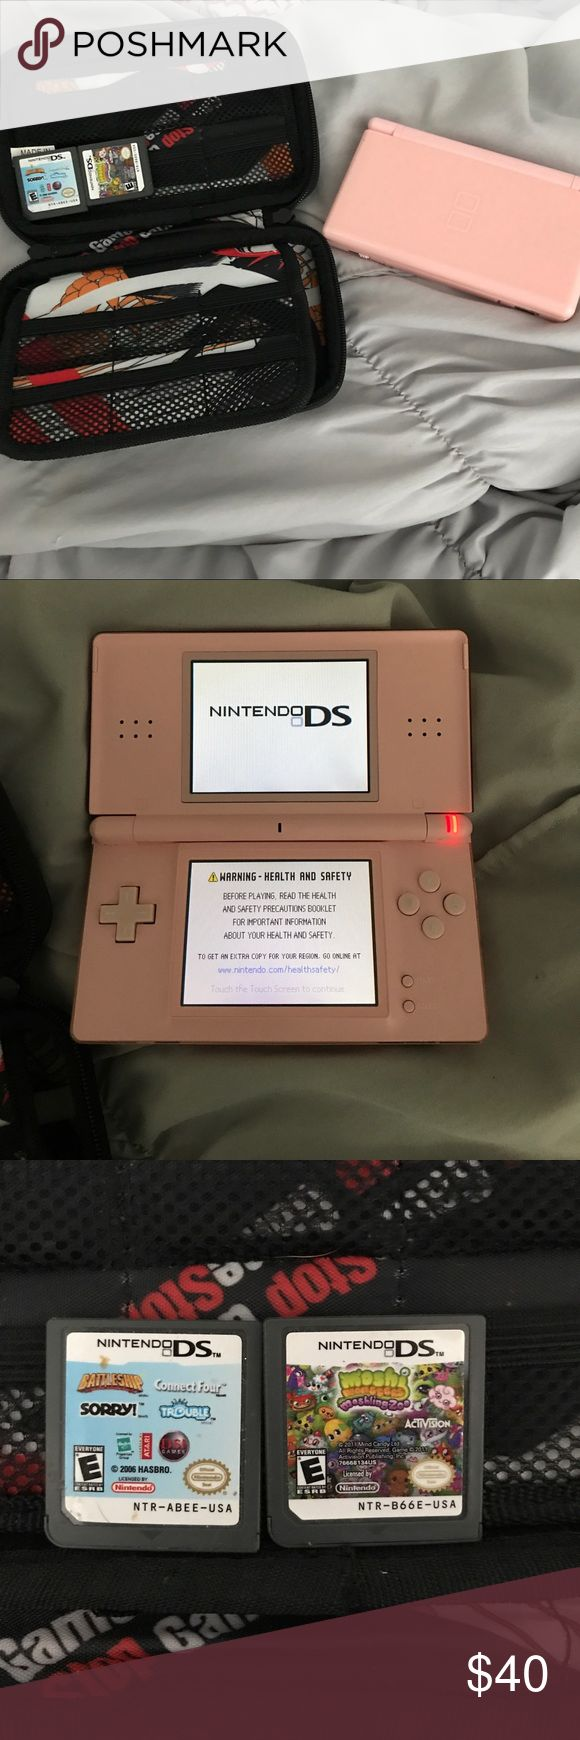 Nintendo Ds Pink, perfect condition, comes with protective carrying case and two games. No charger or stylus Other